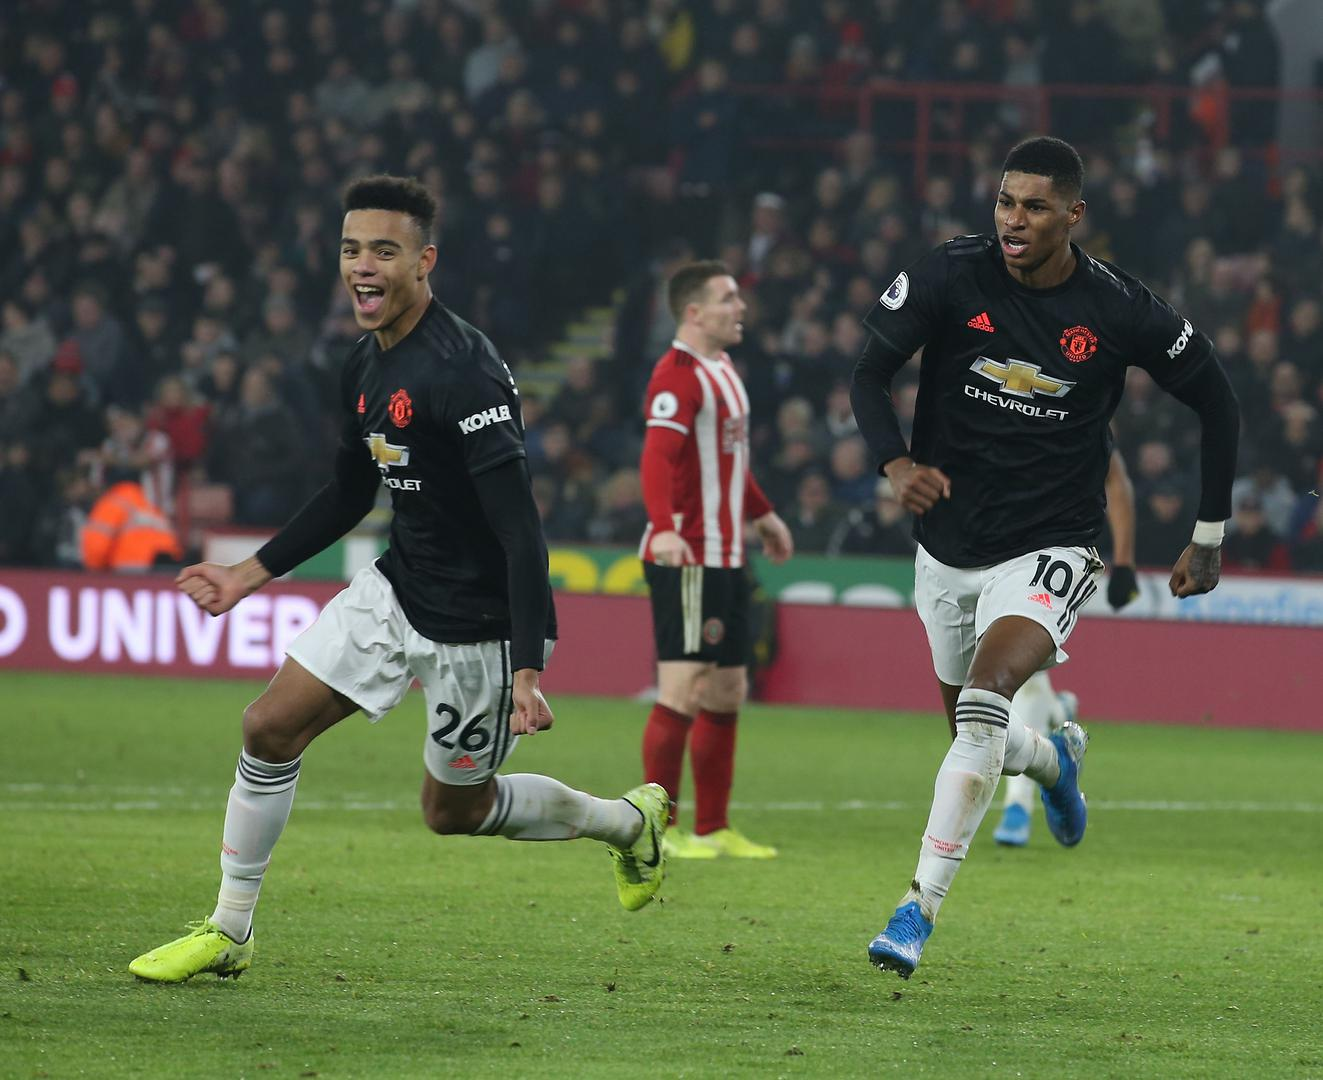 Mason Greenwood and Marcus Rashford celebrate scoring a goal for Manchester United..